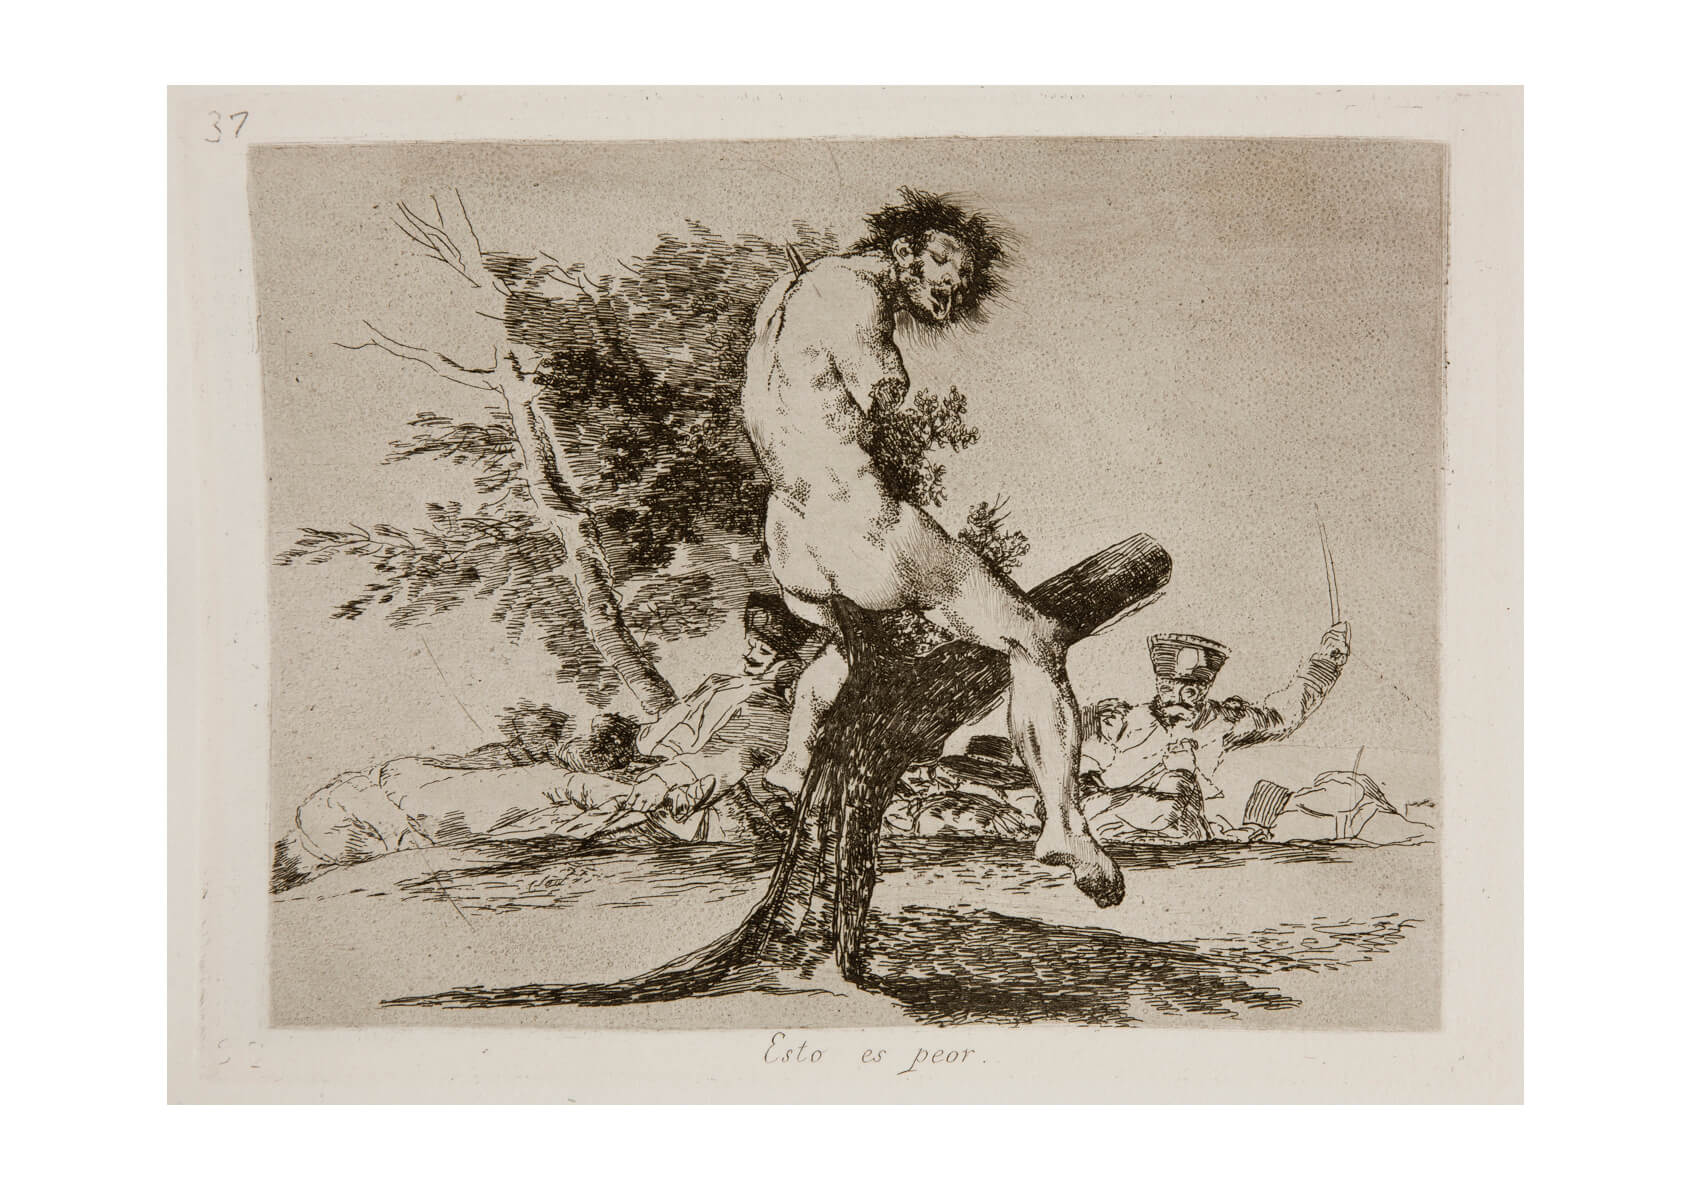 Francisco de Goya - Disasters of War Left in a Tree